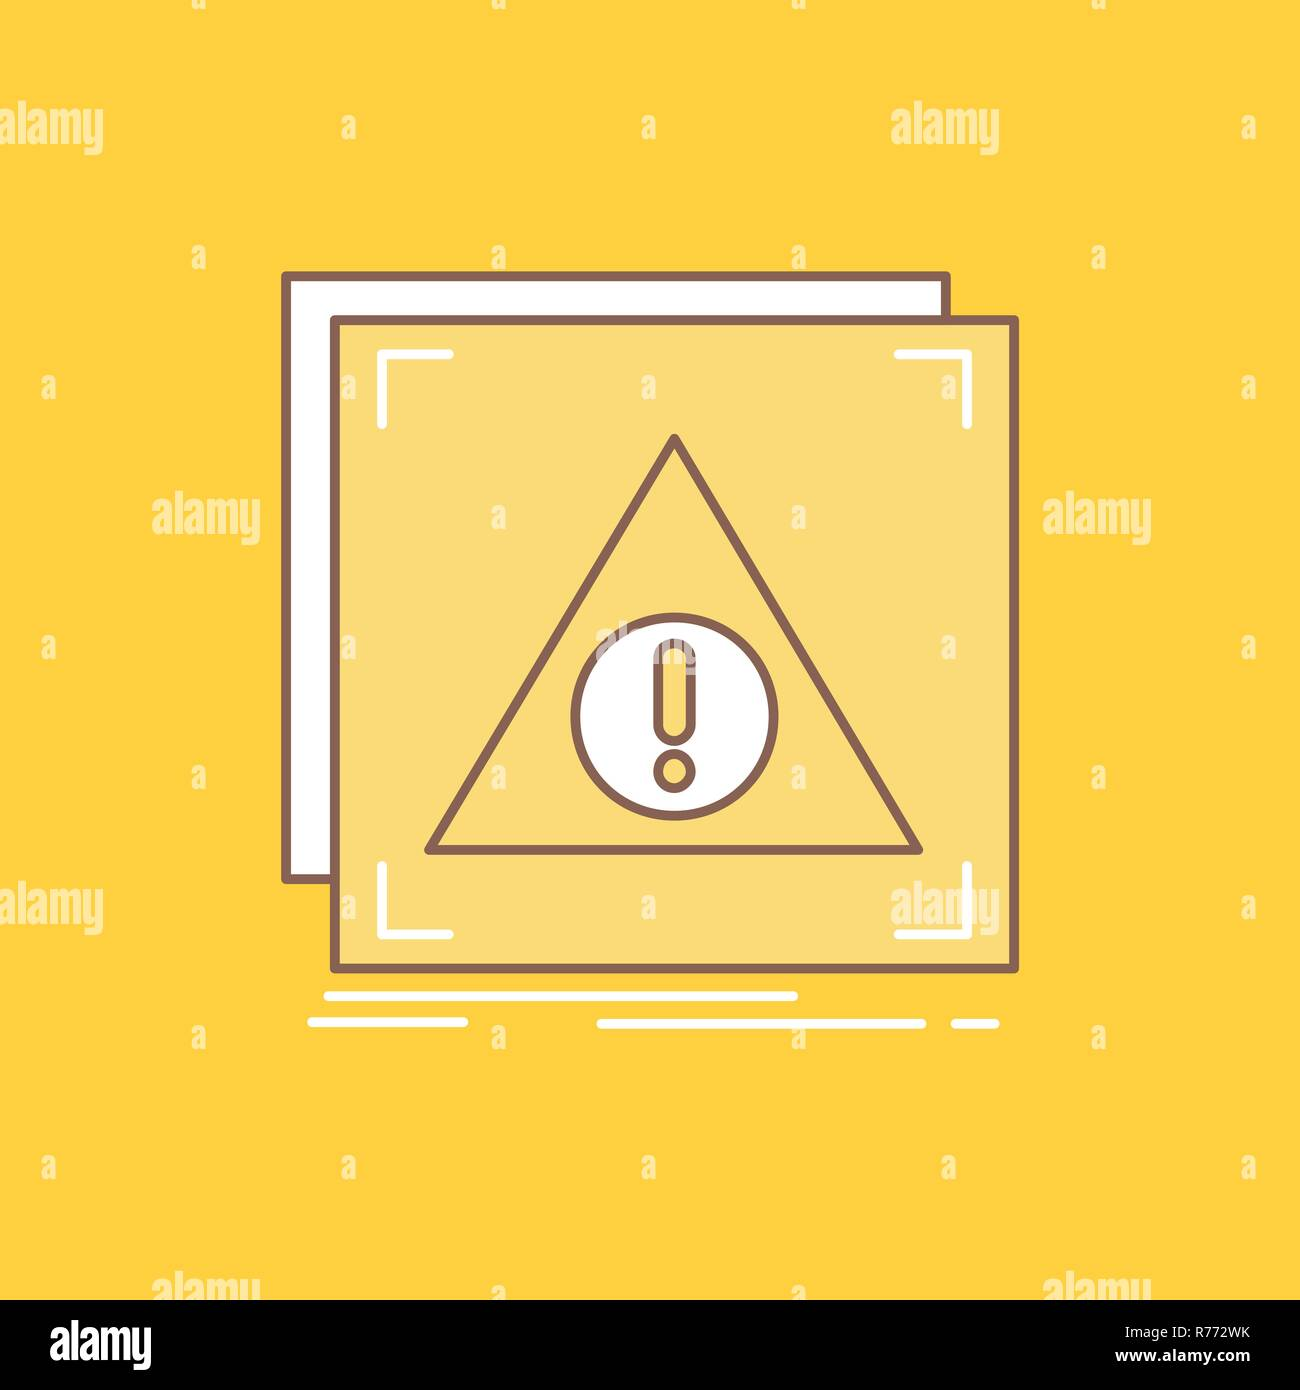 Error, Application, Denied, server, alert Flat Line Filled Icon. Beautiful Logo button over yellow background for UI and UX, website or mobile applica - Stock Image